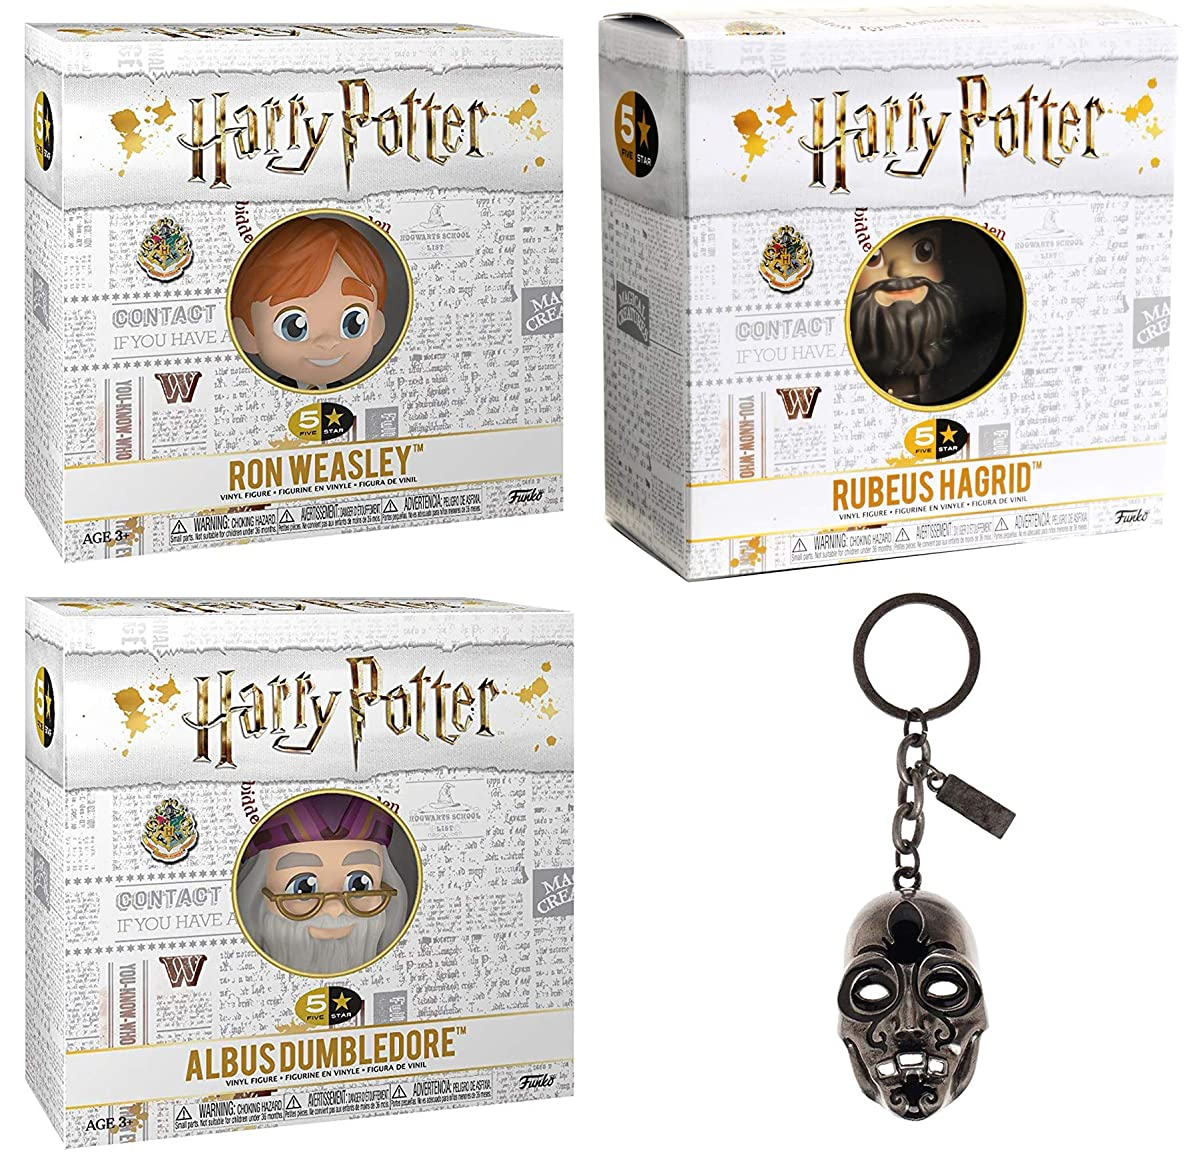 Funko Open Harry Potter Mini Figure figs 5 Star Character Wizard Collectibles Hagrid / Dumbledore & Ron Weasley Bundled with + Death Mask Keychain 4 Items